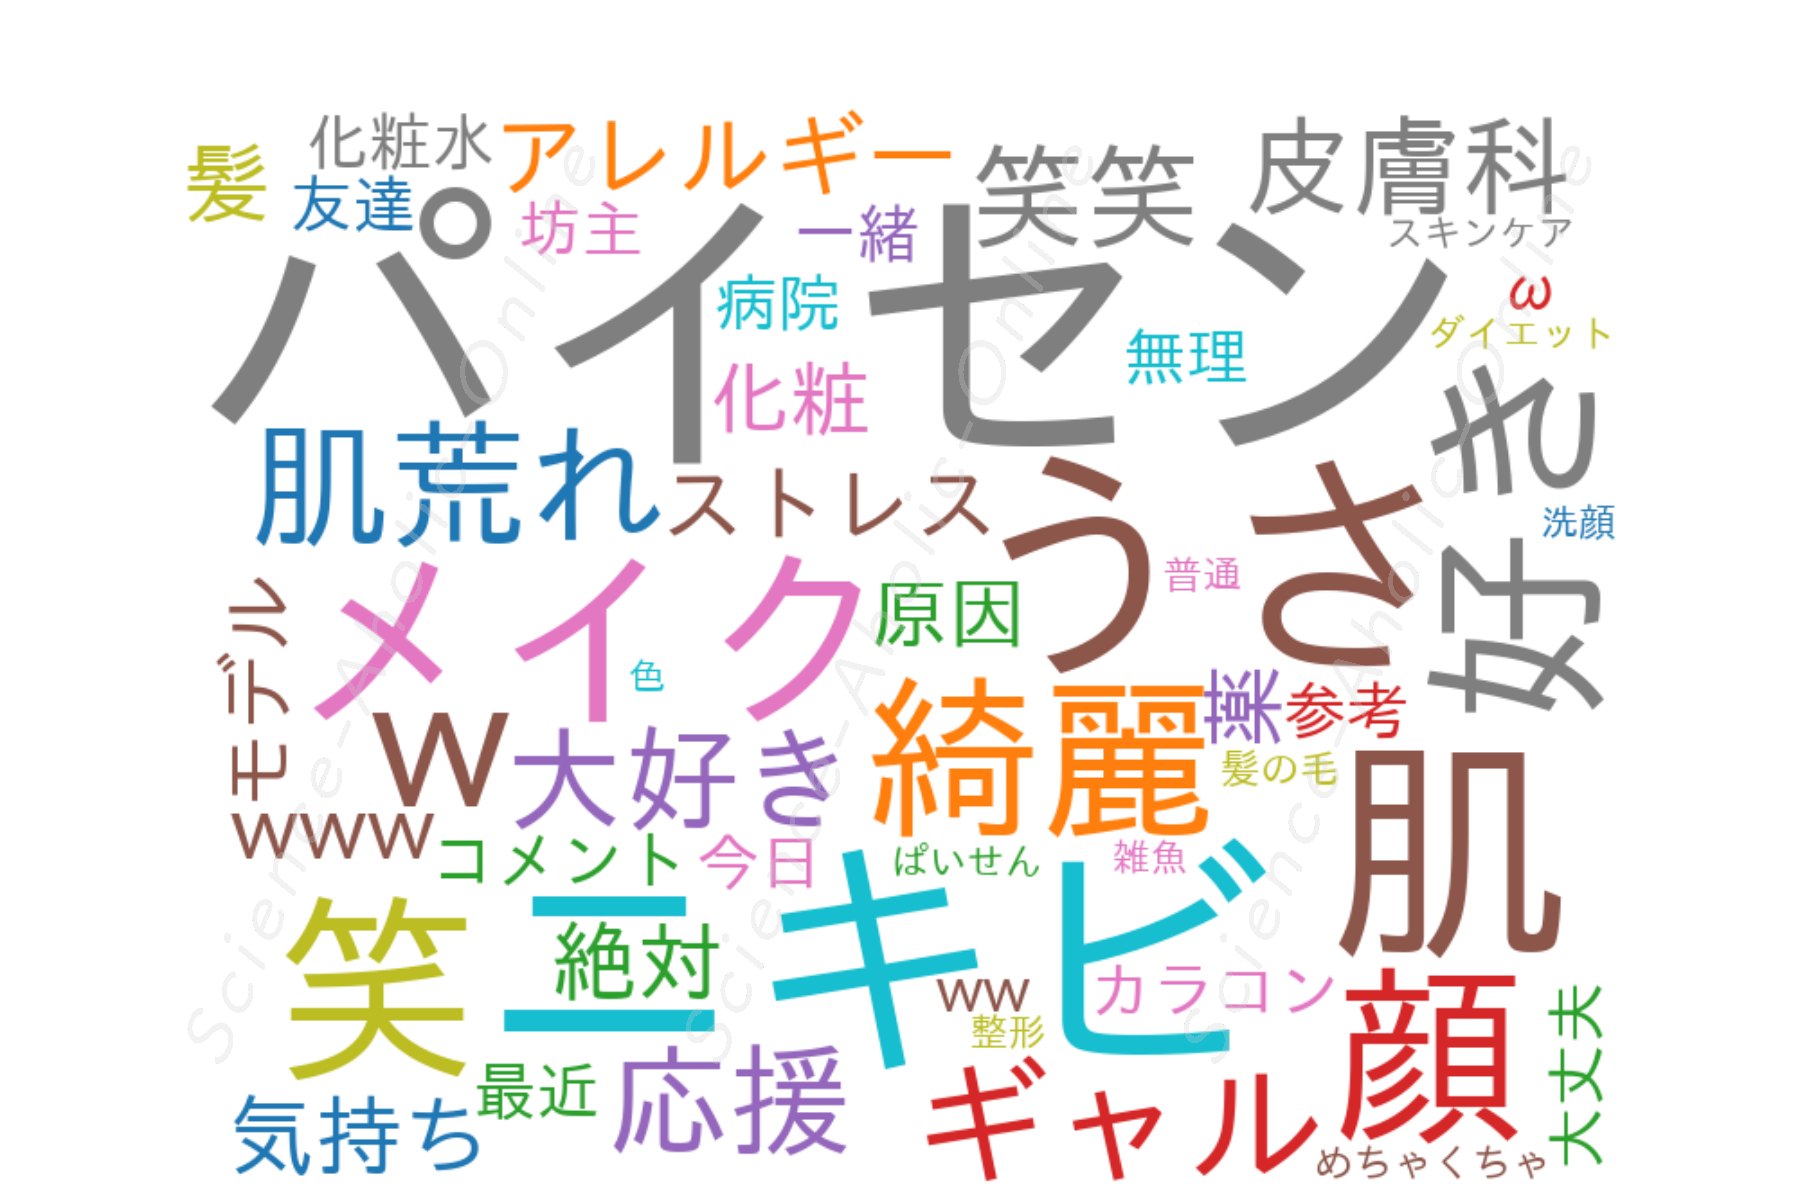 https://science-aholic-online.com/wp-content/uploads/2020/08/wordcloud_usataniうさたにパイセンギャルの教科書.png